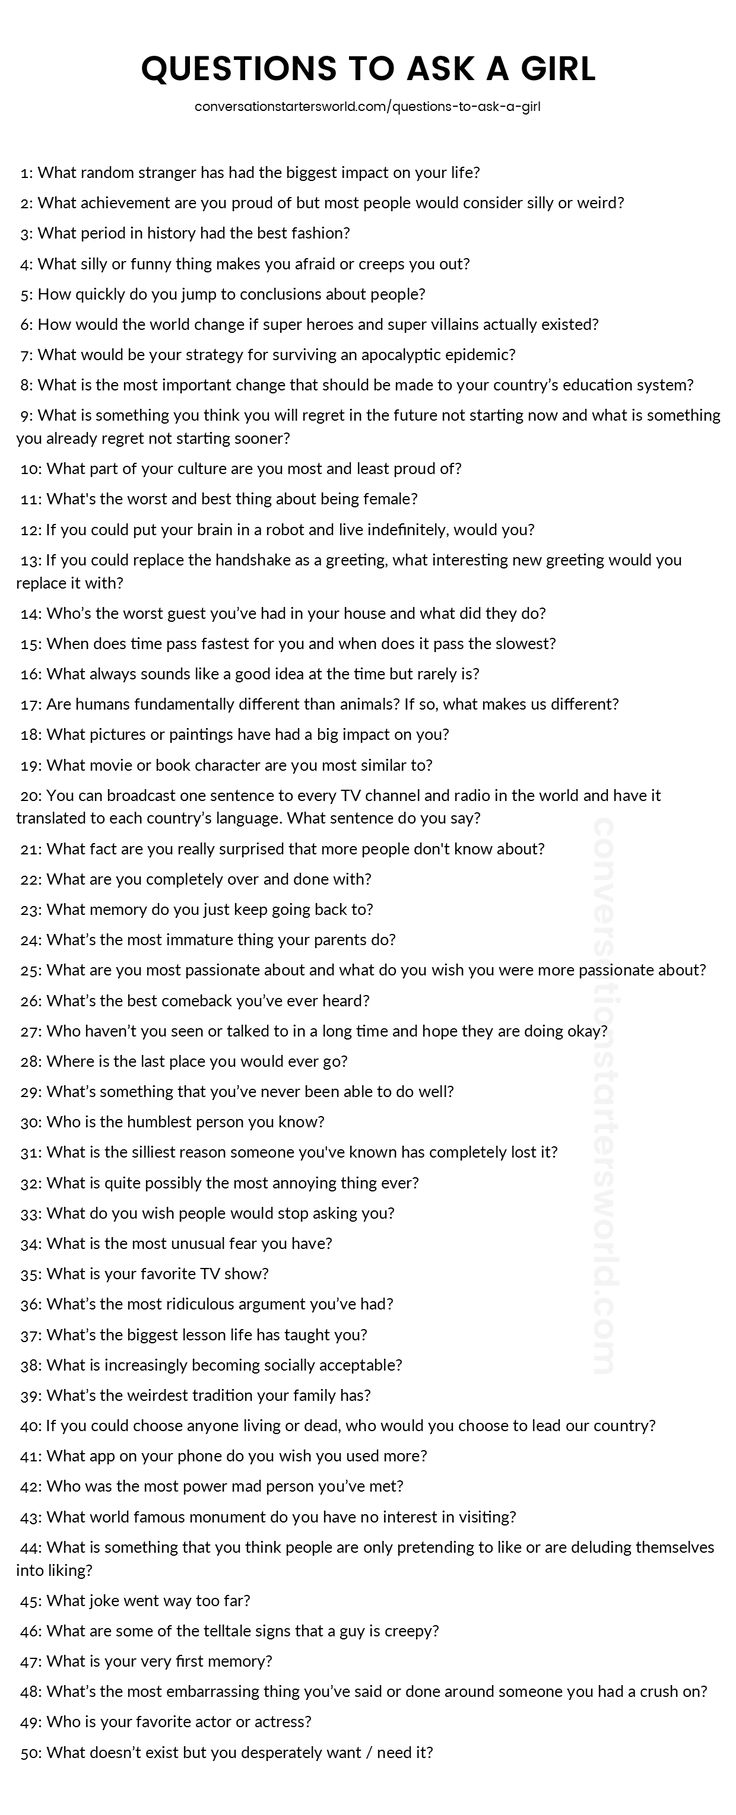 good questions to ask for speed dating Looking for some interesting questions to ask females during a speed dating event somethings besides the usual interests, jobany advice on what to say or talk about would be helpful too.